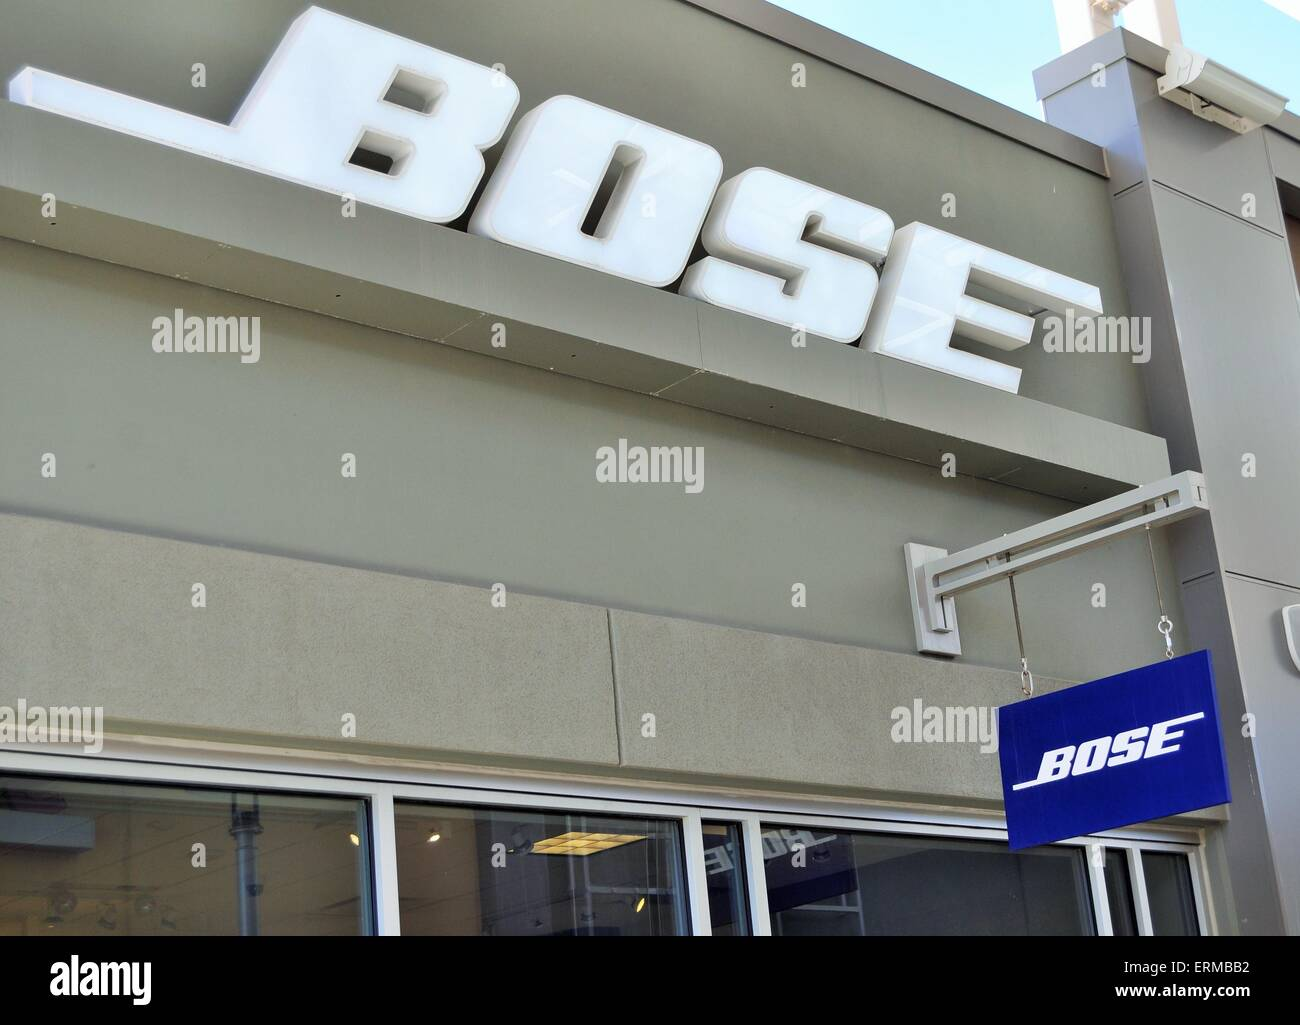 Bose Store front sign - Stock Image